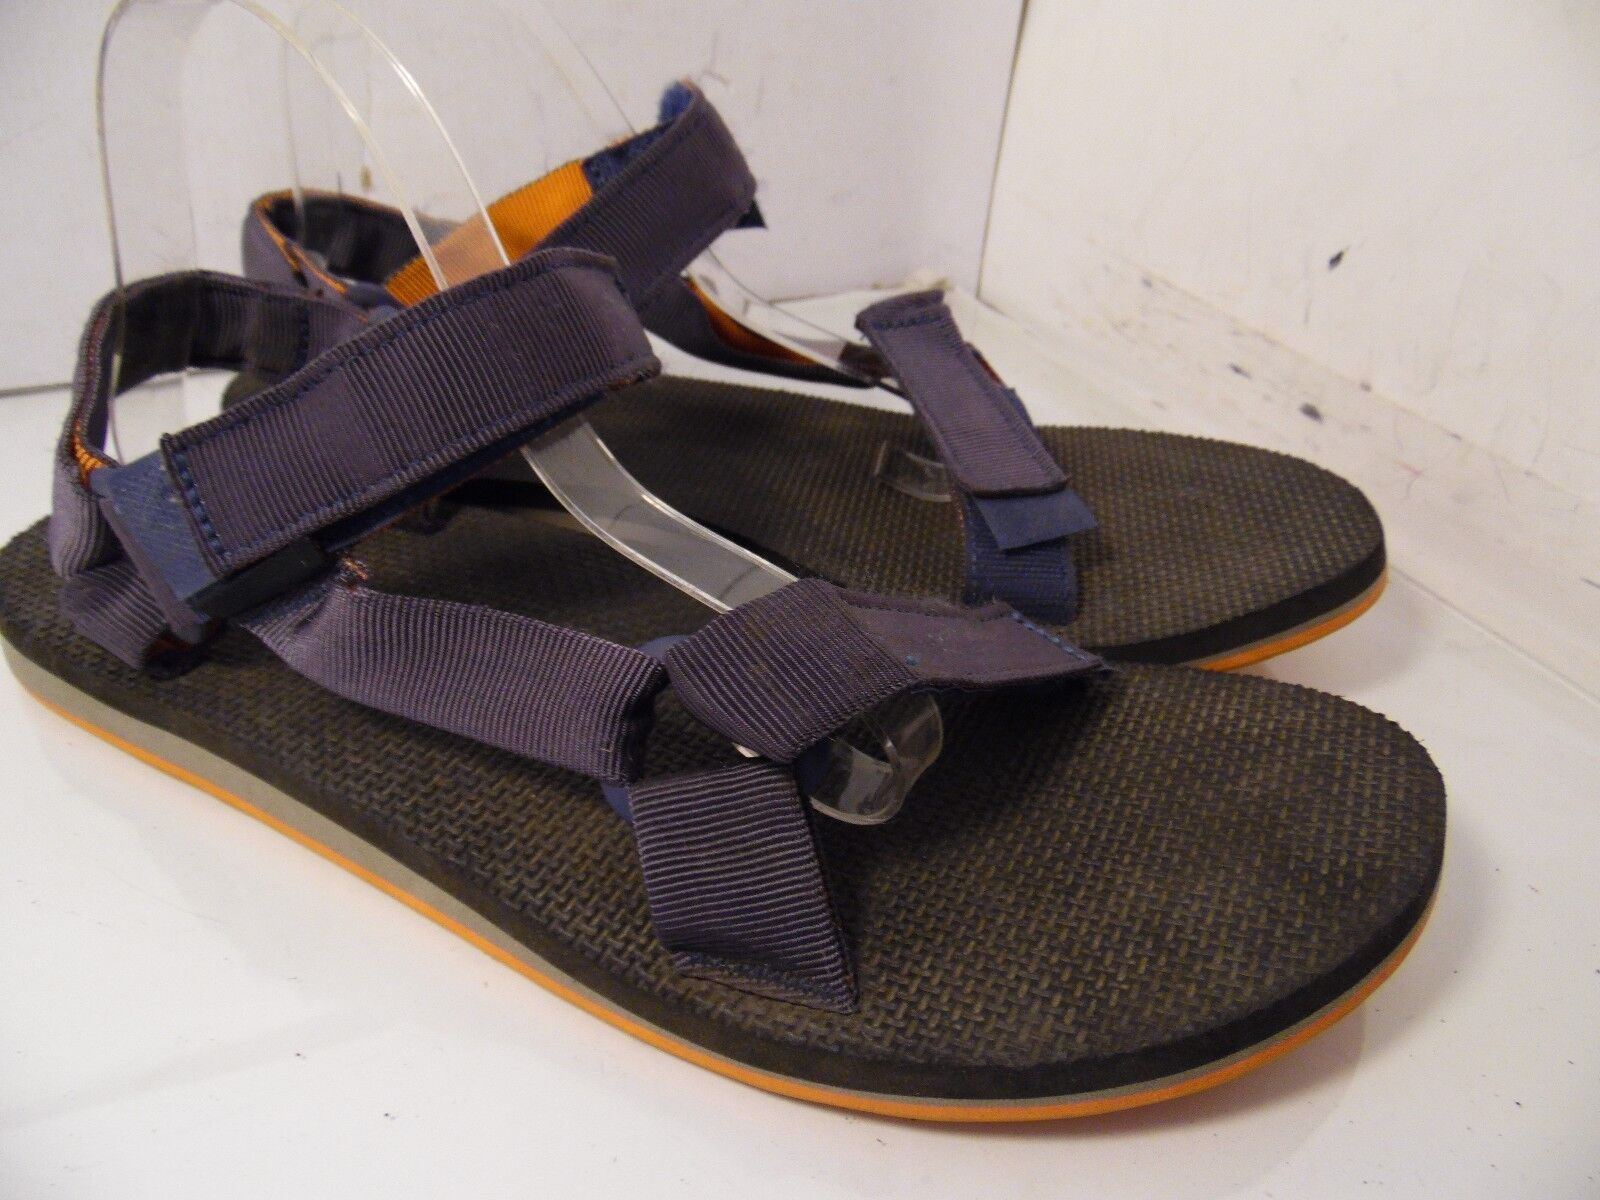 TEVA SN 1004006 Men Sport Sandals Hook Loop Dark Blue Orange Size 12